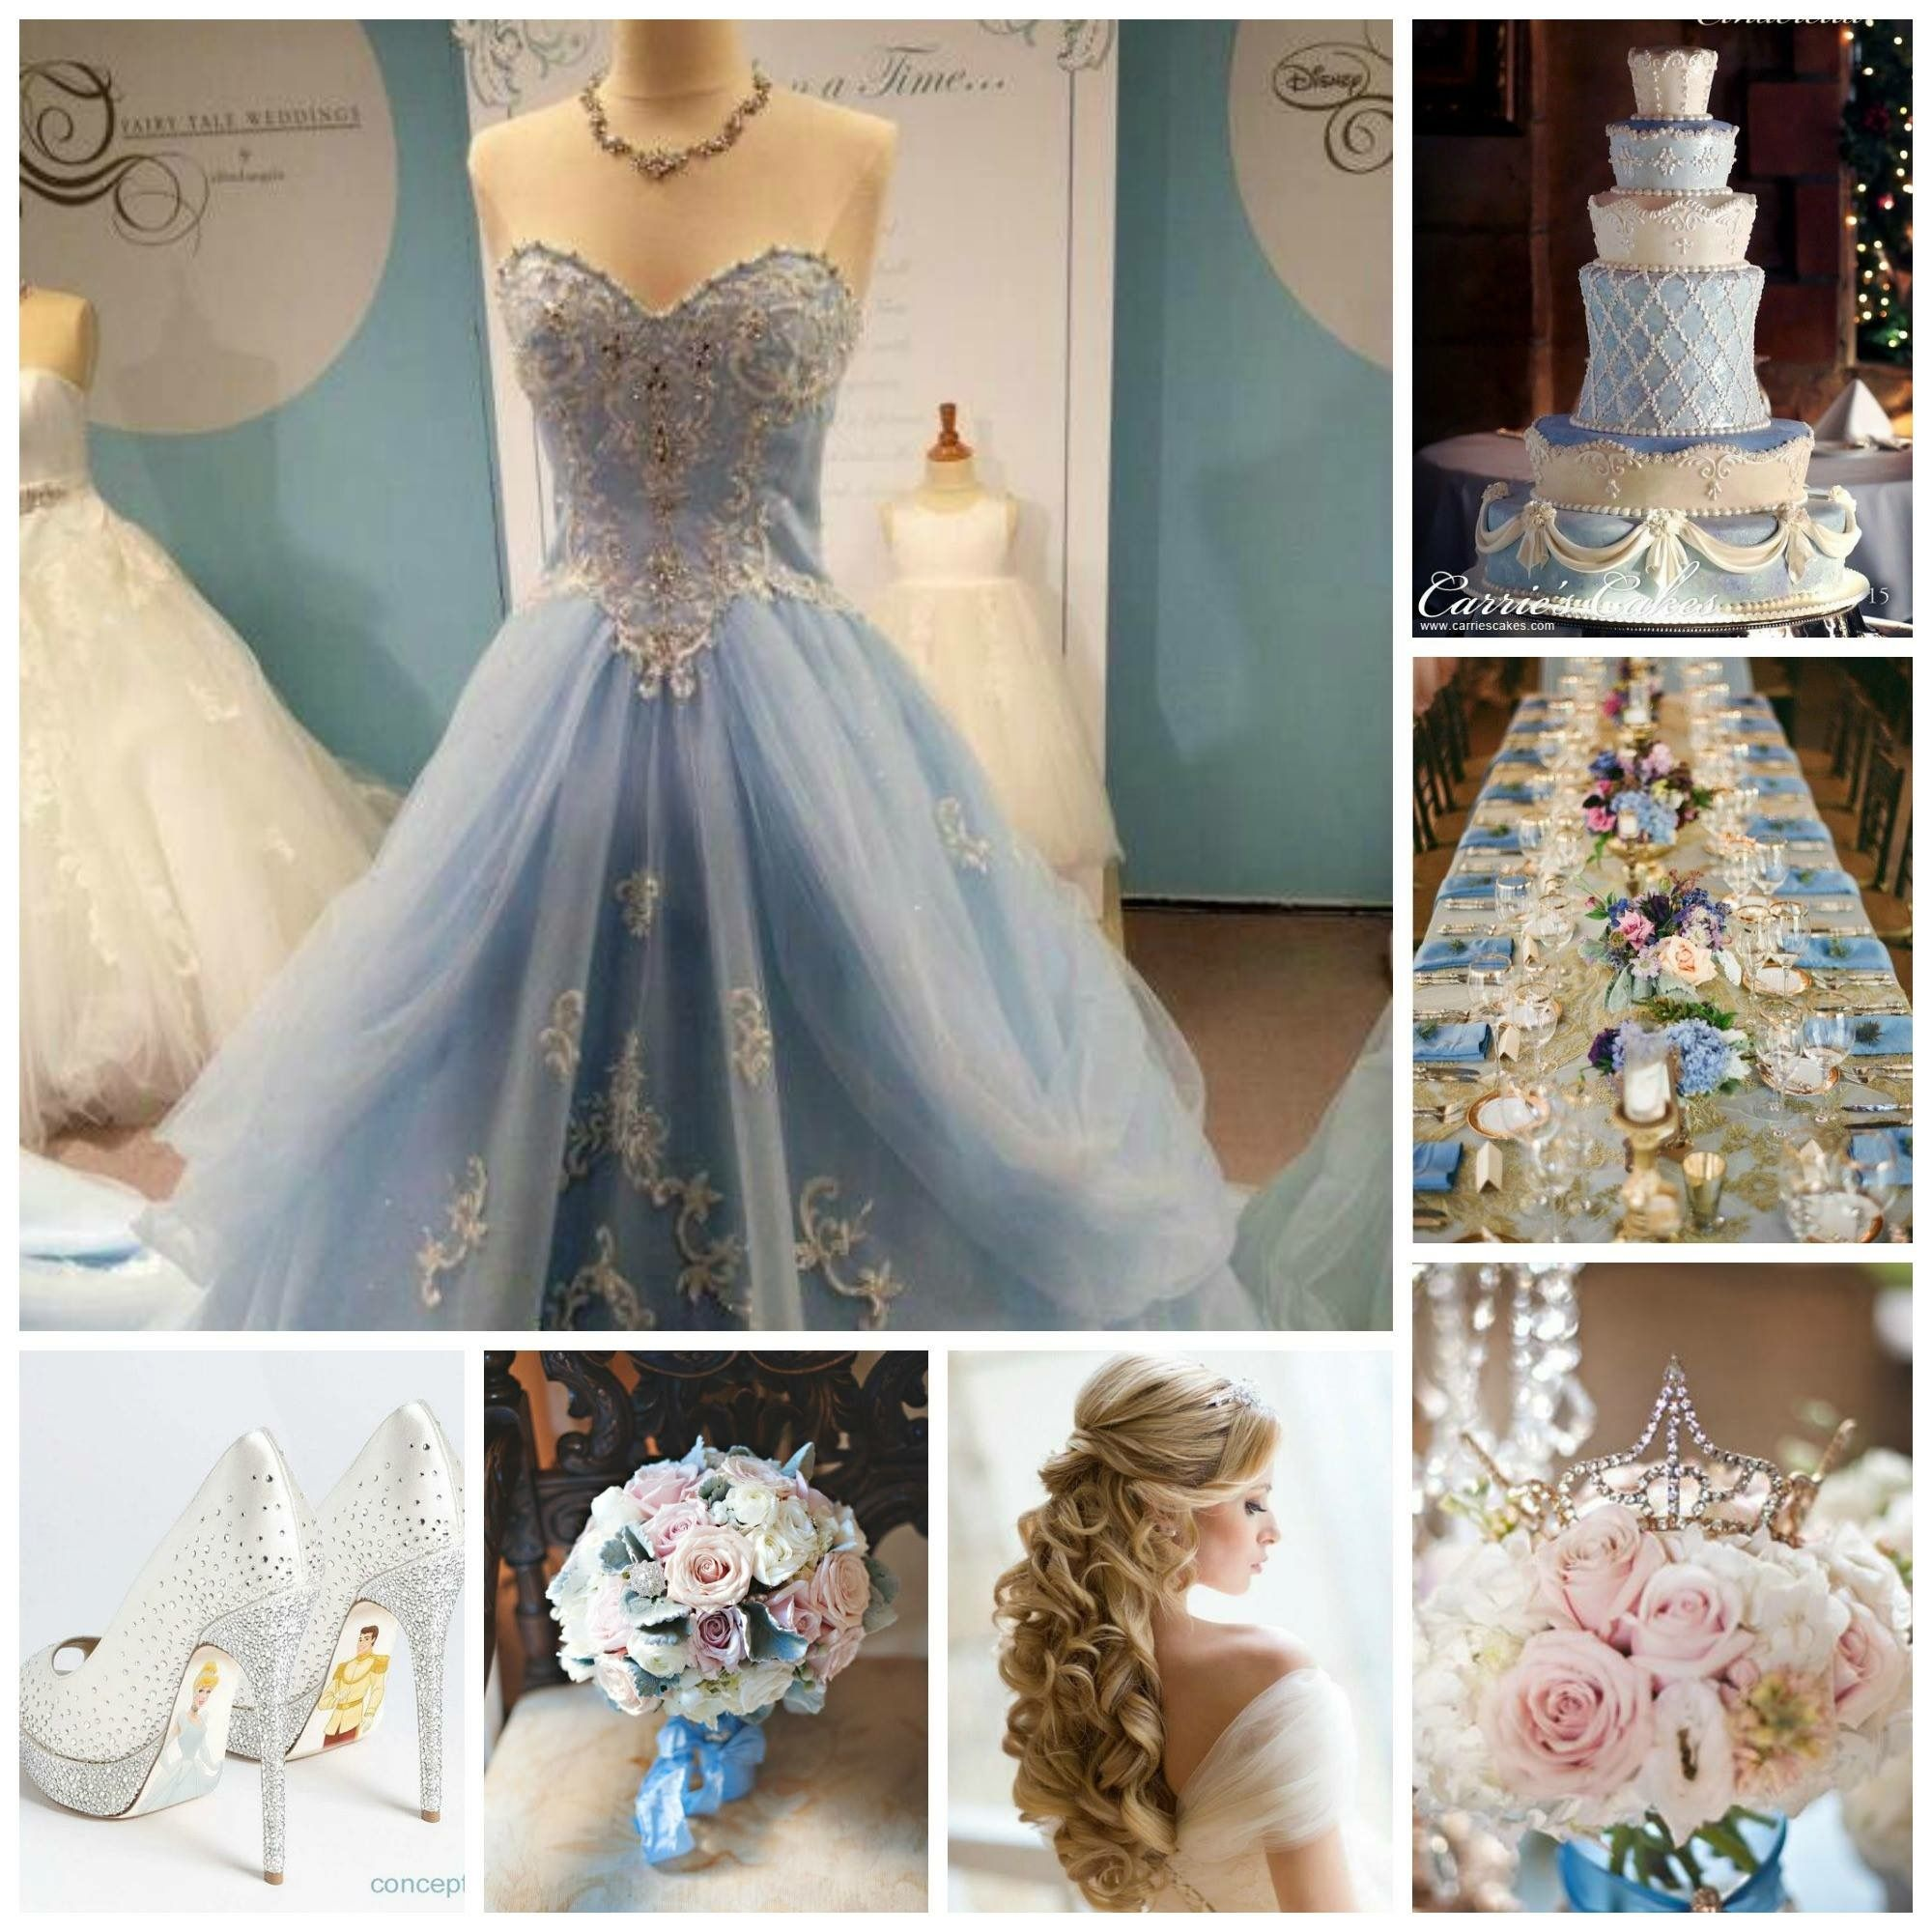 Cinderella Wedding Theme Ideas: Pin By Erika Burgos On Sasha's Quinceanera In 2019